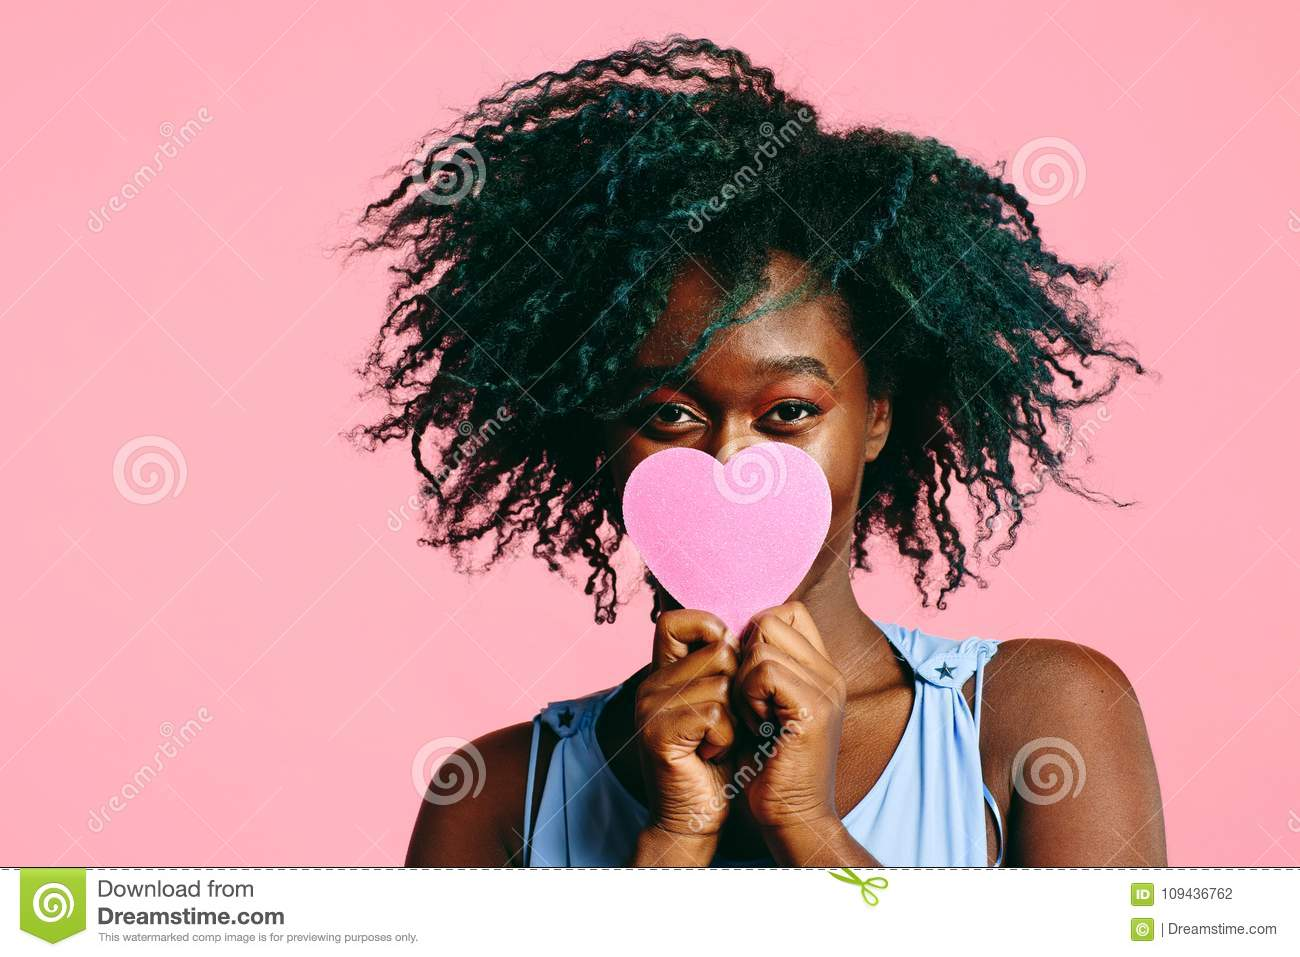 Girl with blueish black curly hair holding a pink heart in front of her face